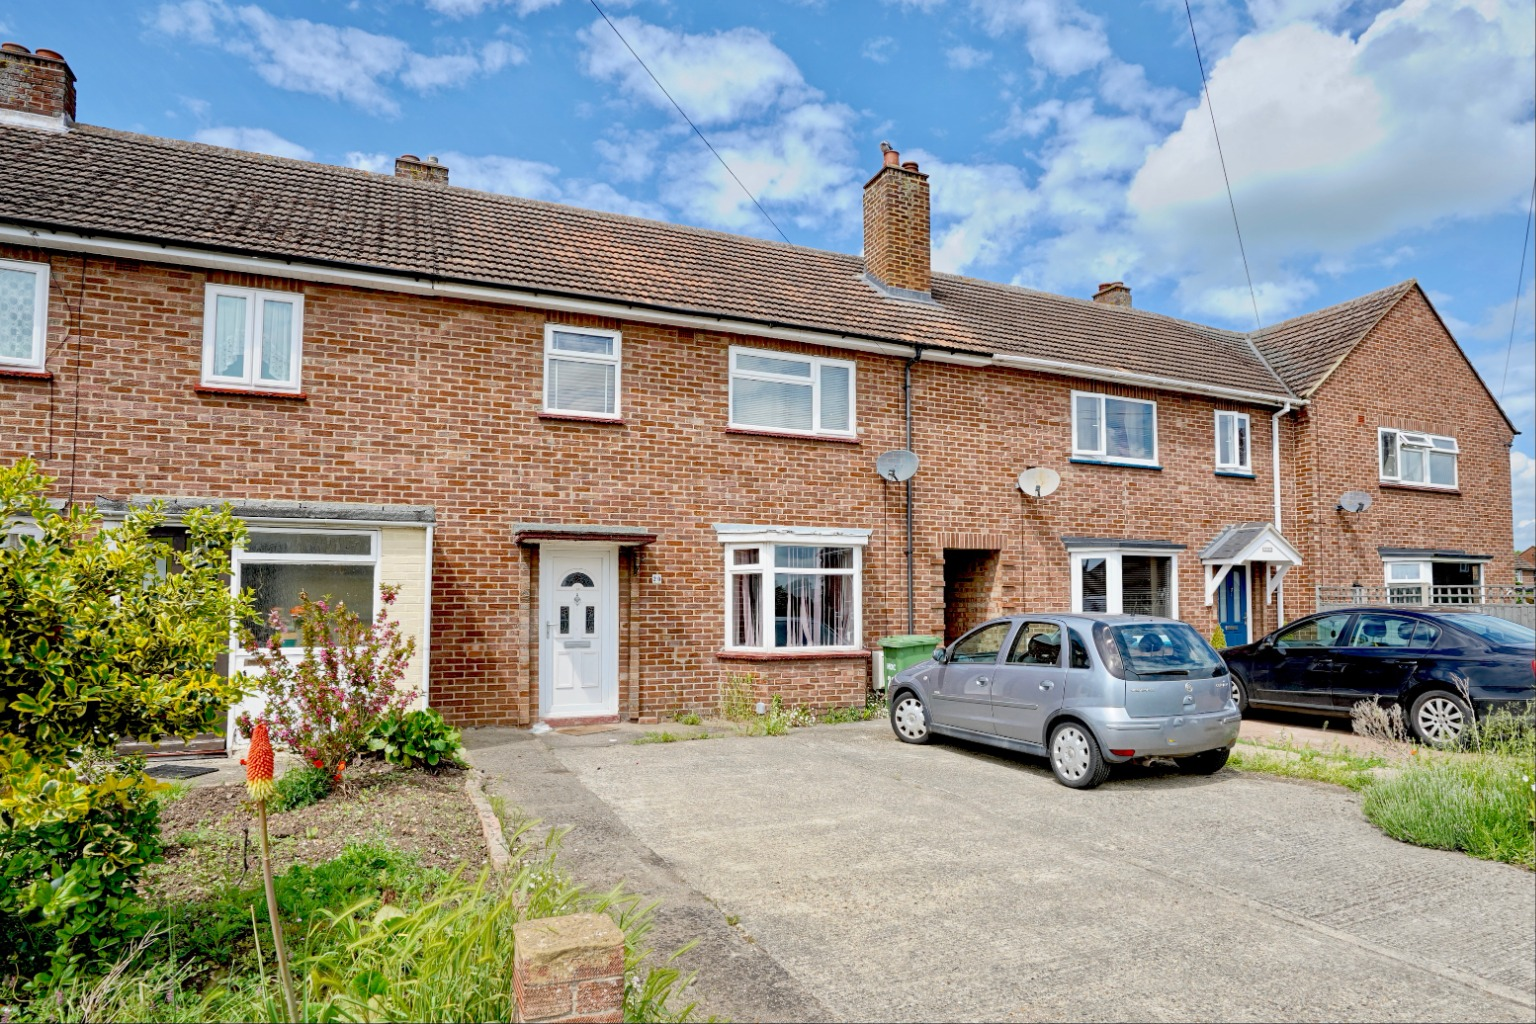 3 bed  for sale in Leys Road, St. Neots, PE19